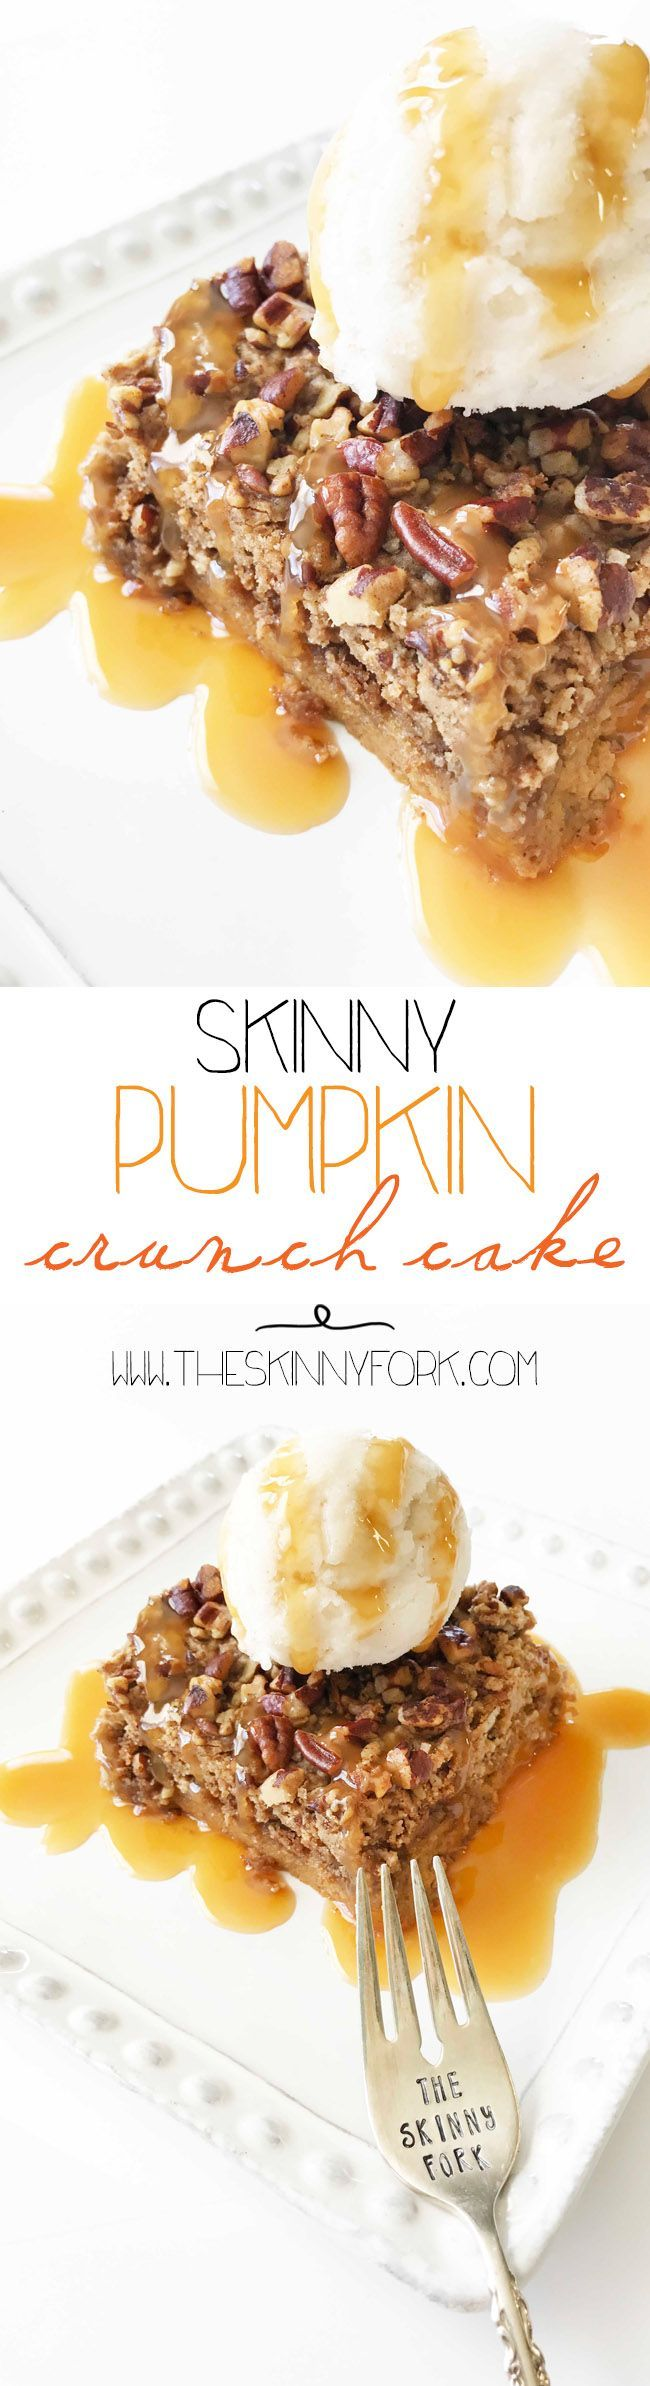 recipe: pumpkin crunch cake pampered chef [20]